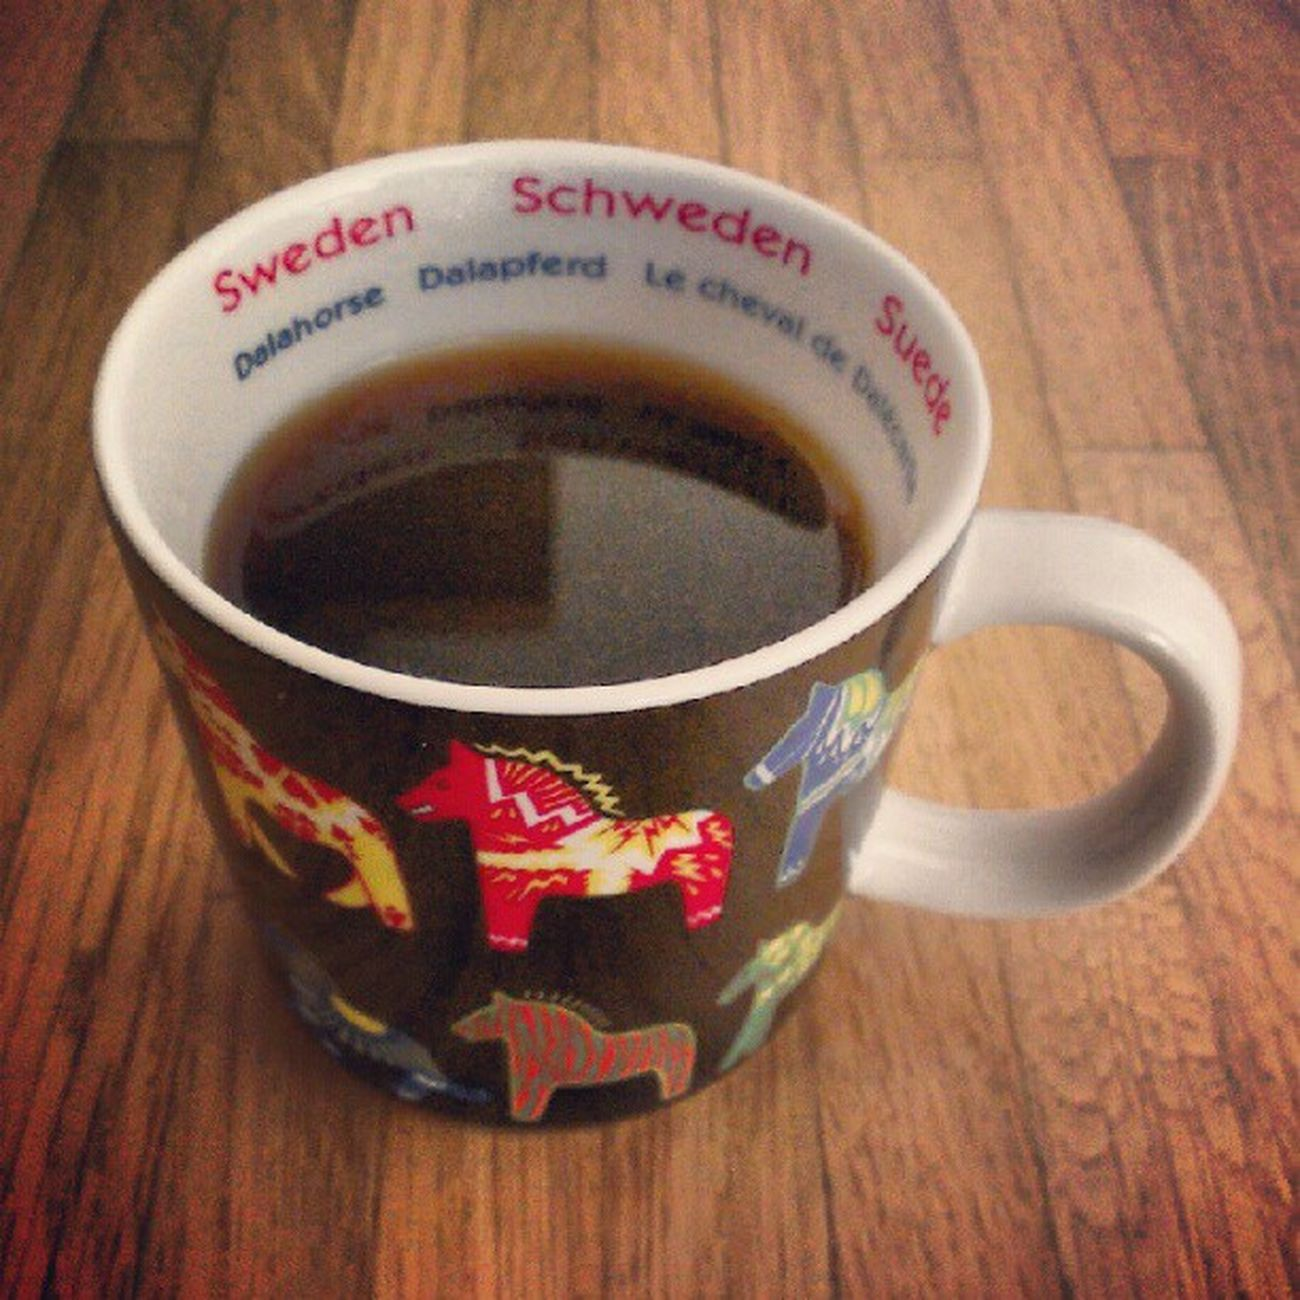 Afternoon coffee with original Swedish mugs, thanks to AndreasSjostrom! #CoffeeTweet #TdDE Coffeetweet Tdde